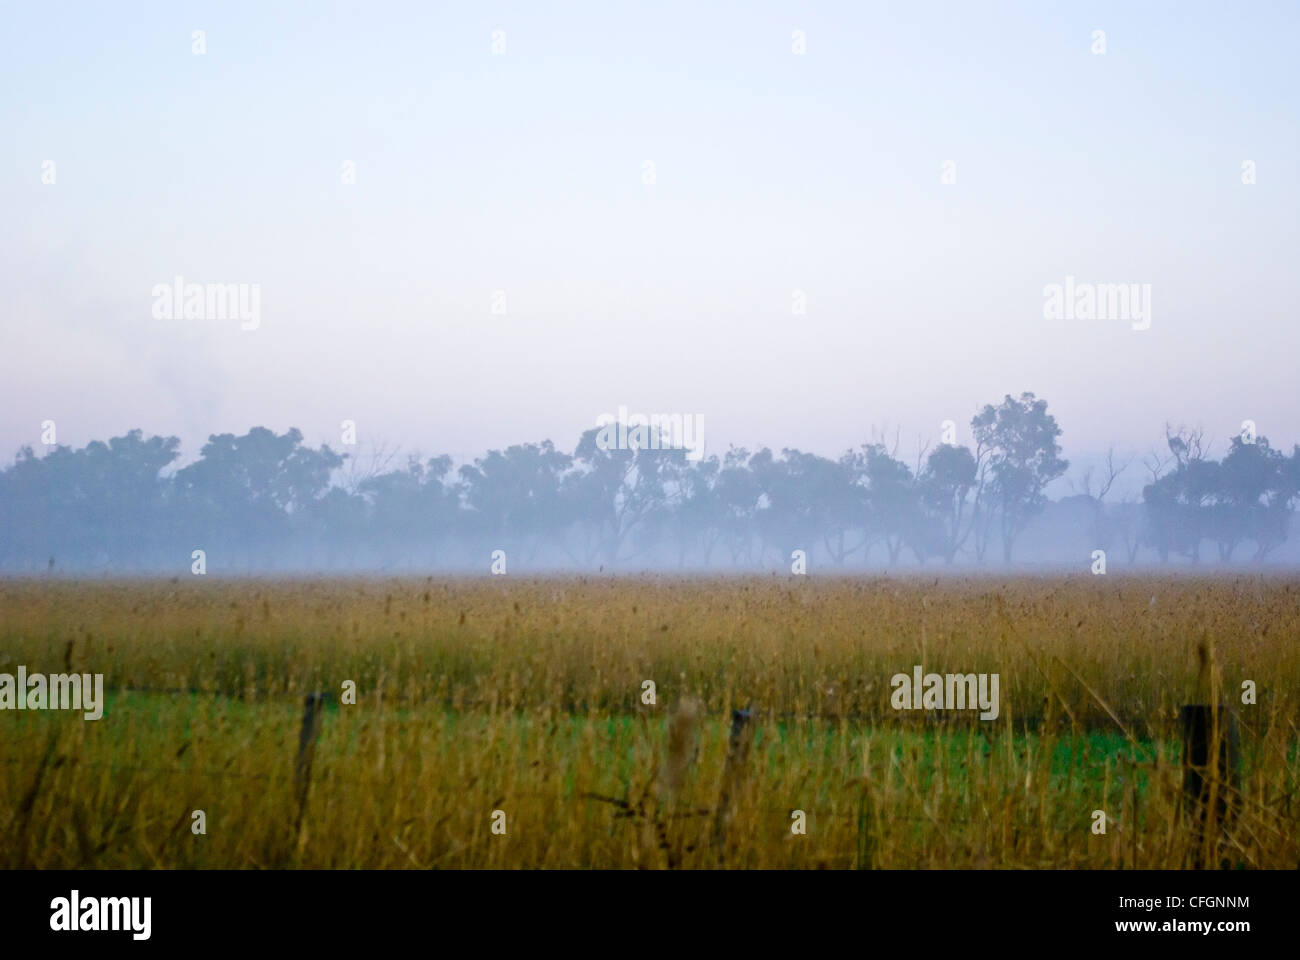 A line of trees above a farm field of wheat in winter fog at dawn. - Stock Image